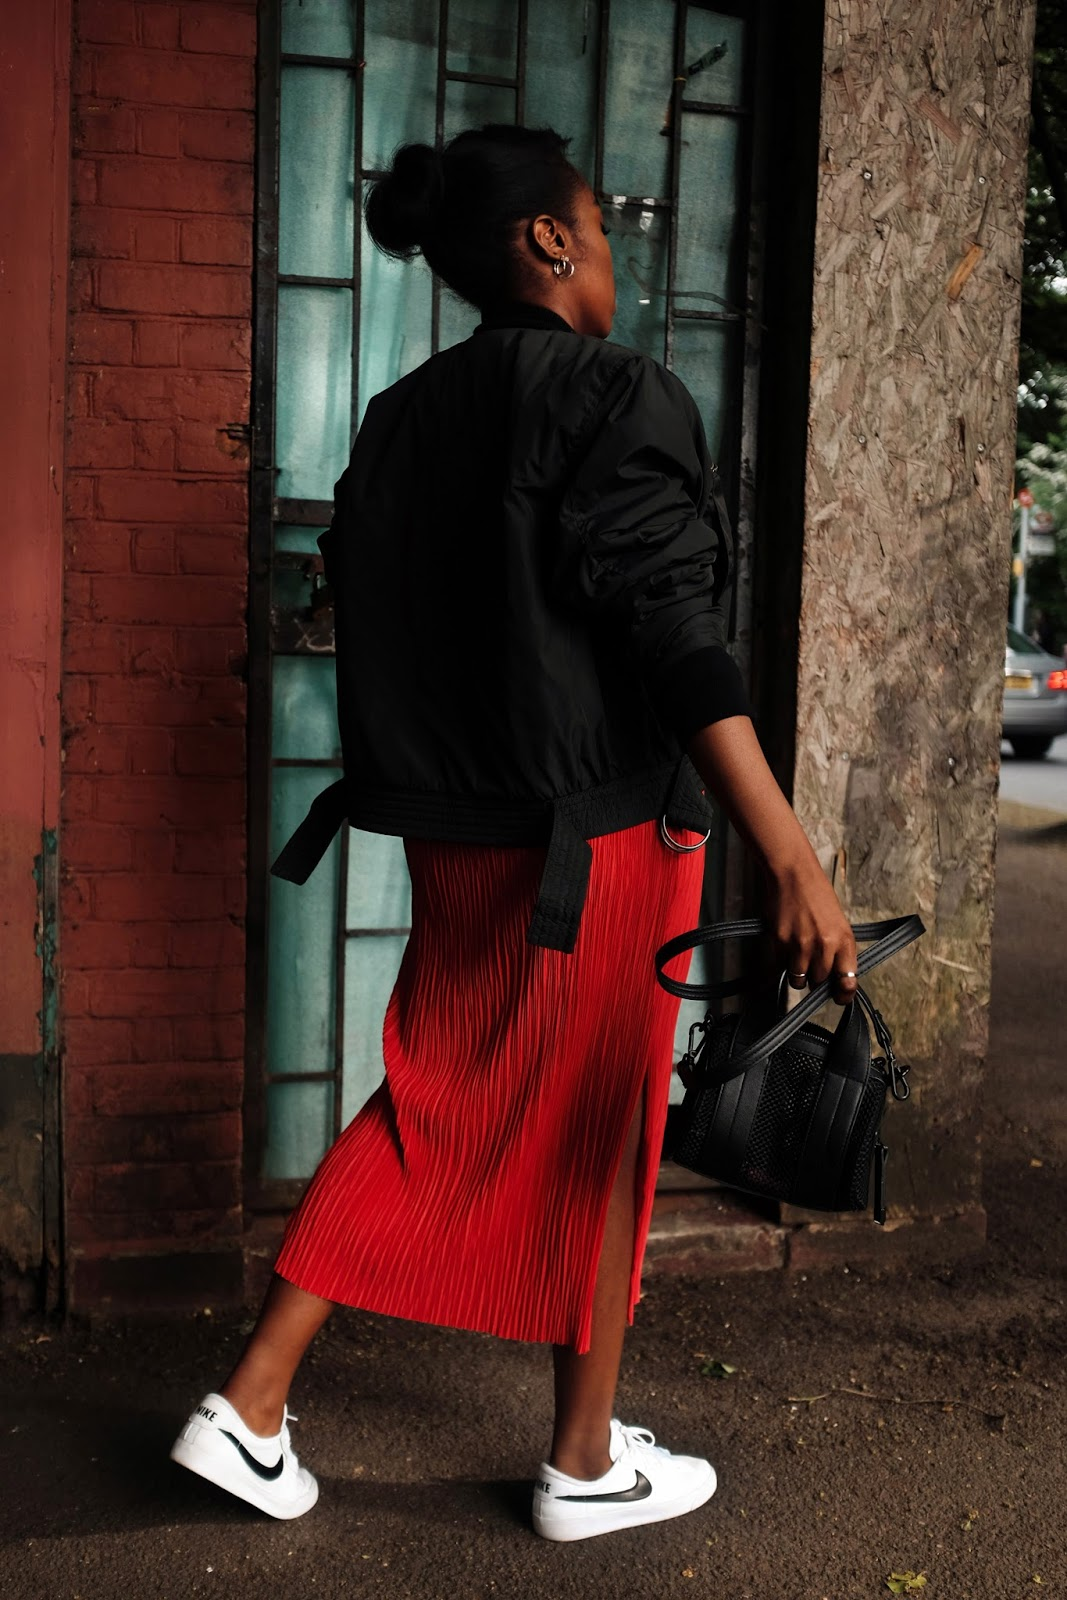 Red H&M Trend Sleeveless Pleated Dress, H&M Trend Bomber Jacket, Nike Classic Tennis AC Sneakers